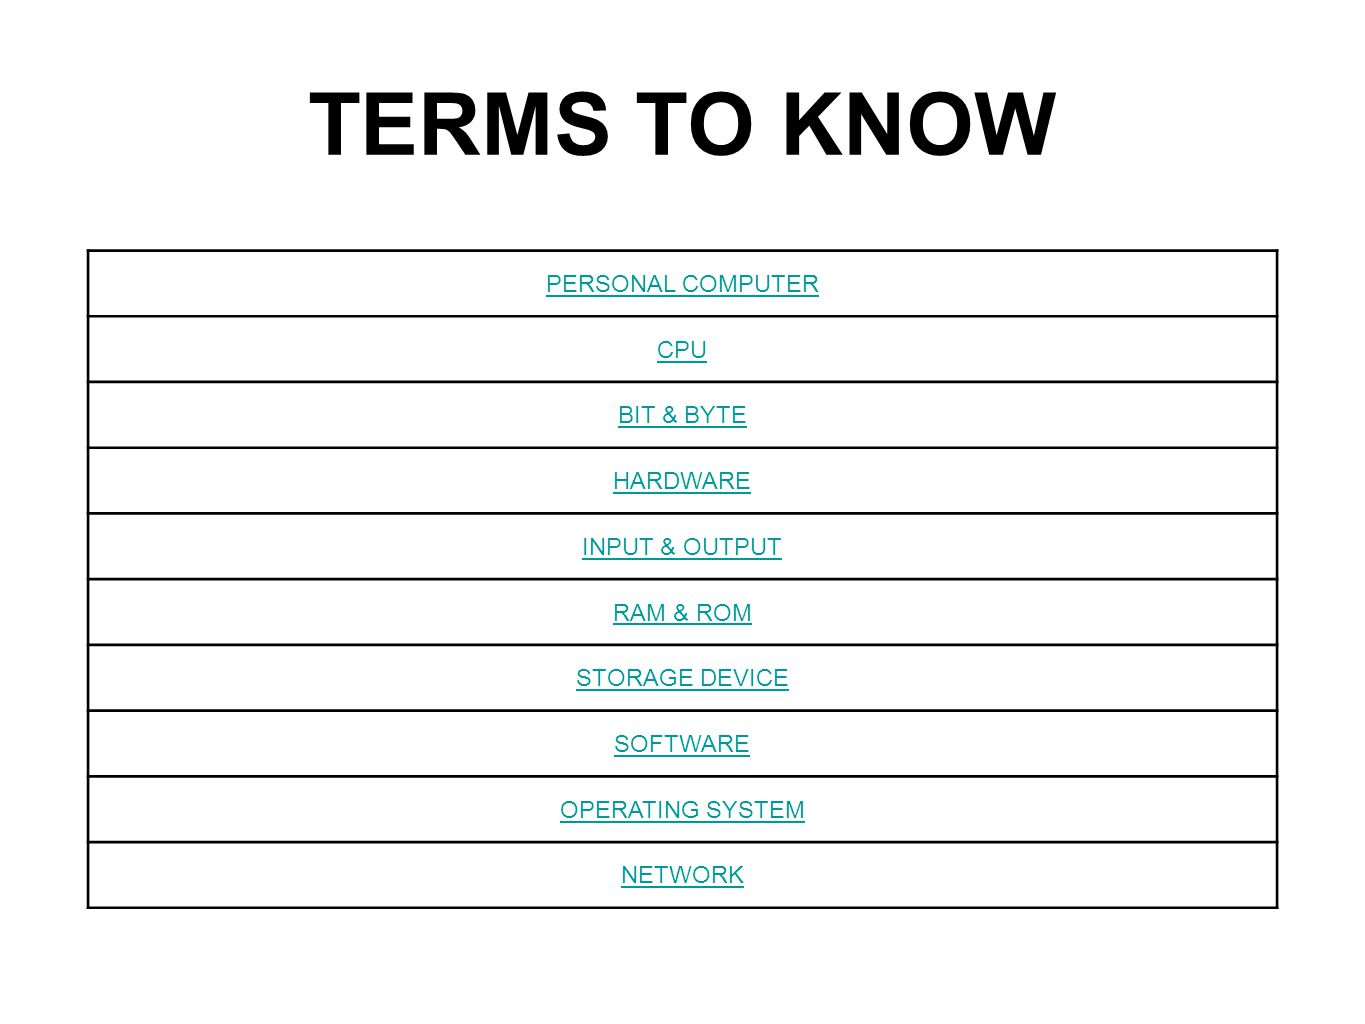 TERMS TO KNOW PERSONAL COMPUTER CPU BIT & BYTE HARDWARE INPUT & OUTPUT RAM & ROM STORAGE DEVICE SOFTWARE OPERATING SYSTEM NETWORK